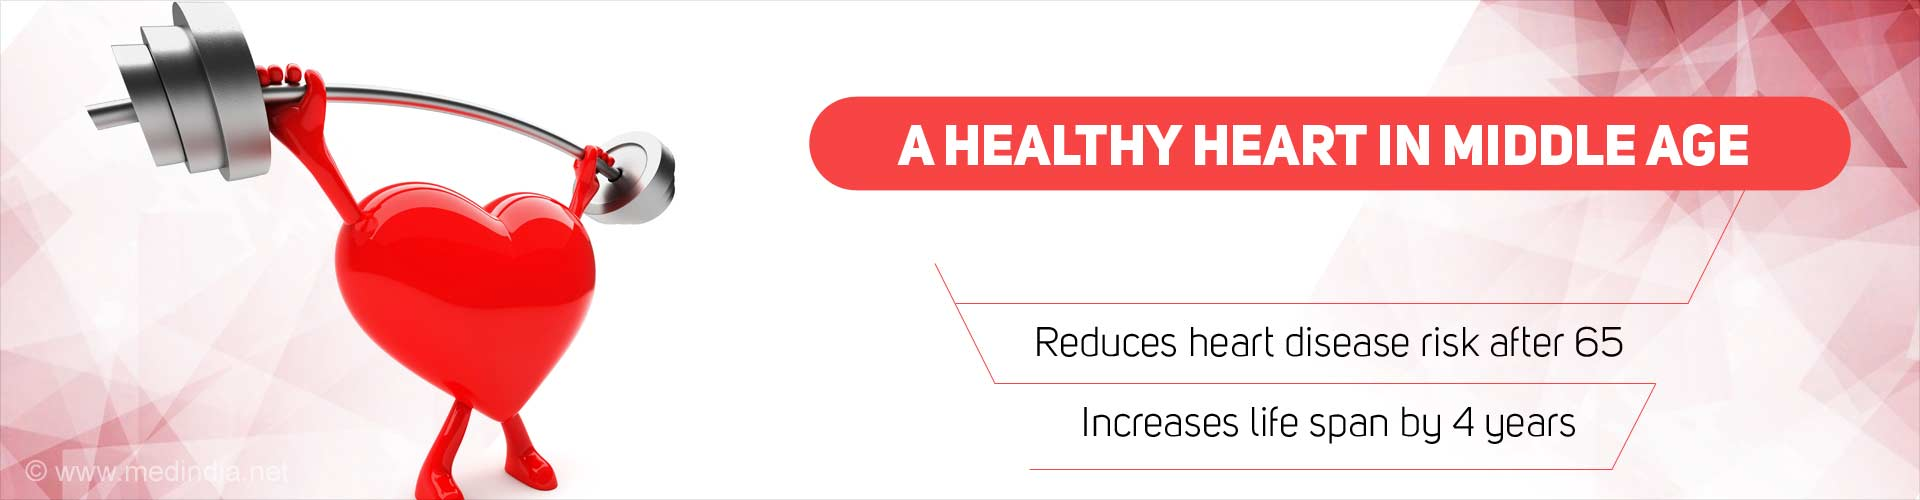 Maintain Good Heart Health in Middle Age: Enjoy Healthier Old Age